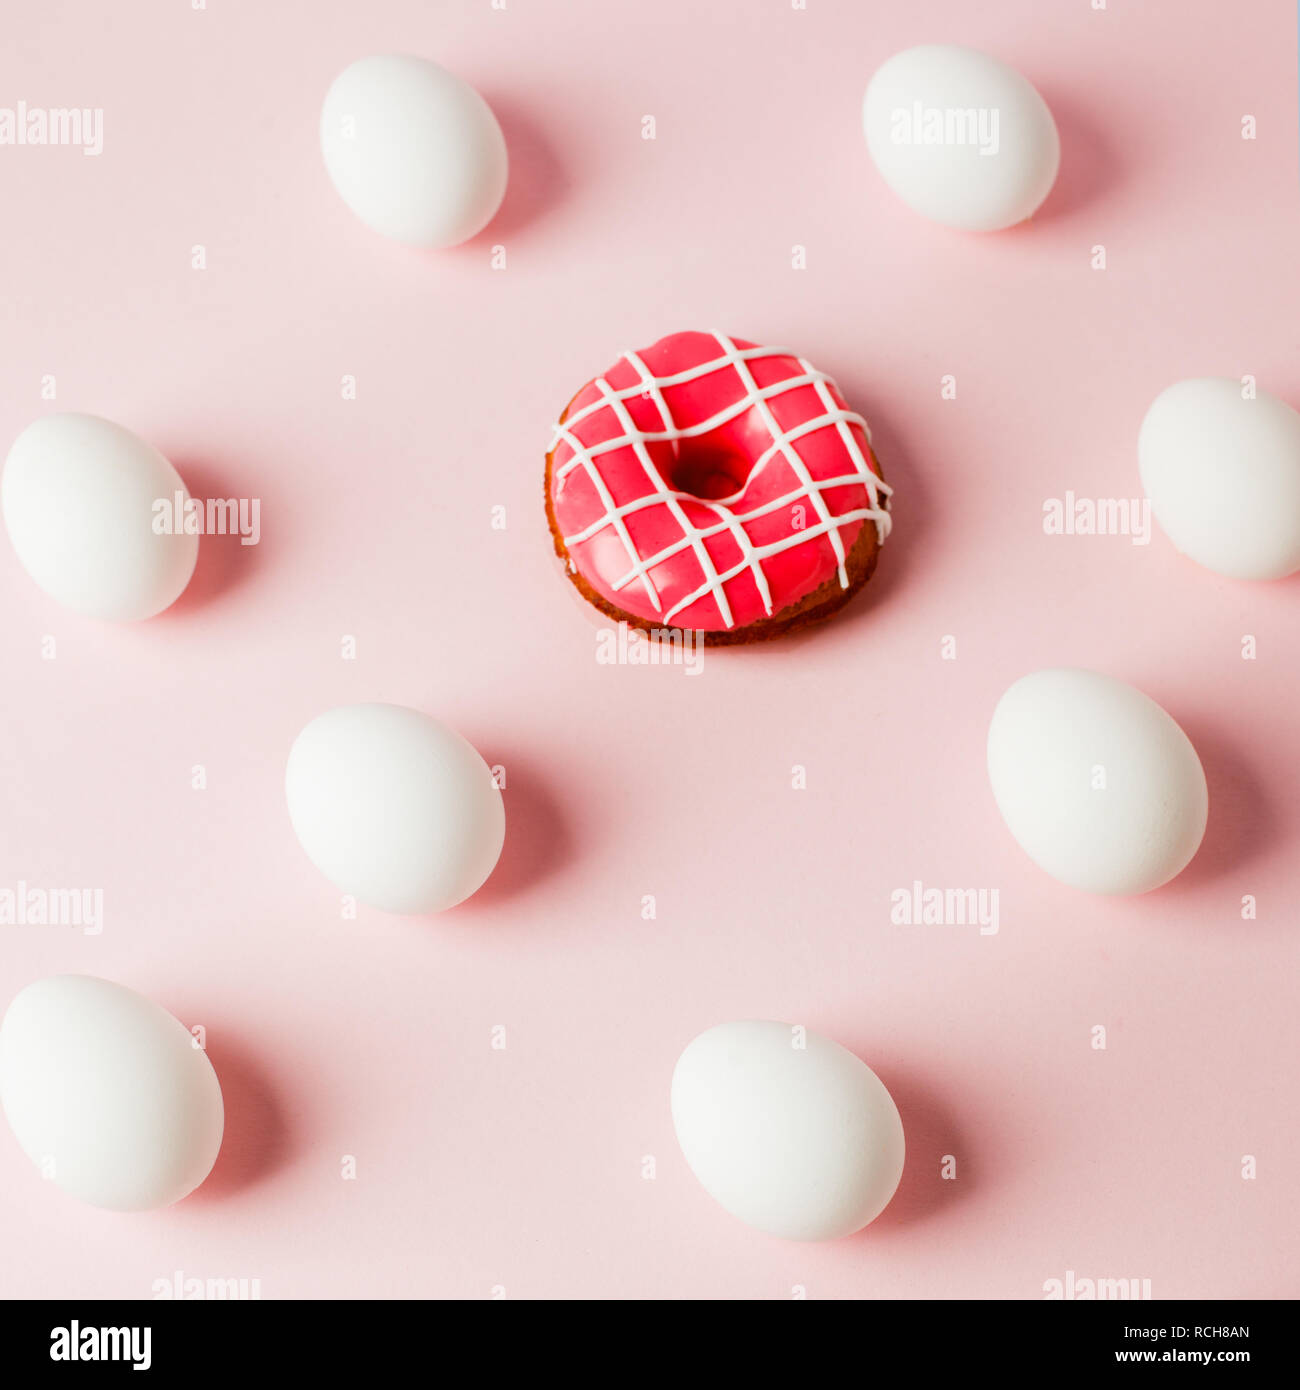 Easter white eggs repetition with shadow and pink donut on pink pastel background, system error, copy space, trendy background - Stock Image